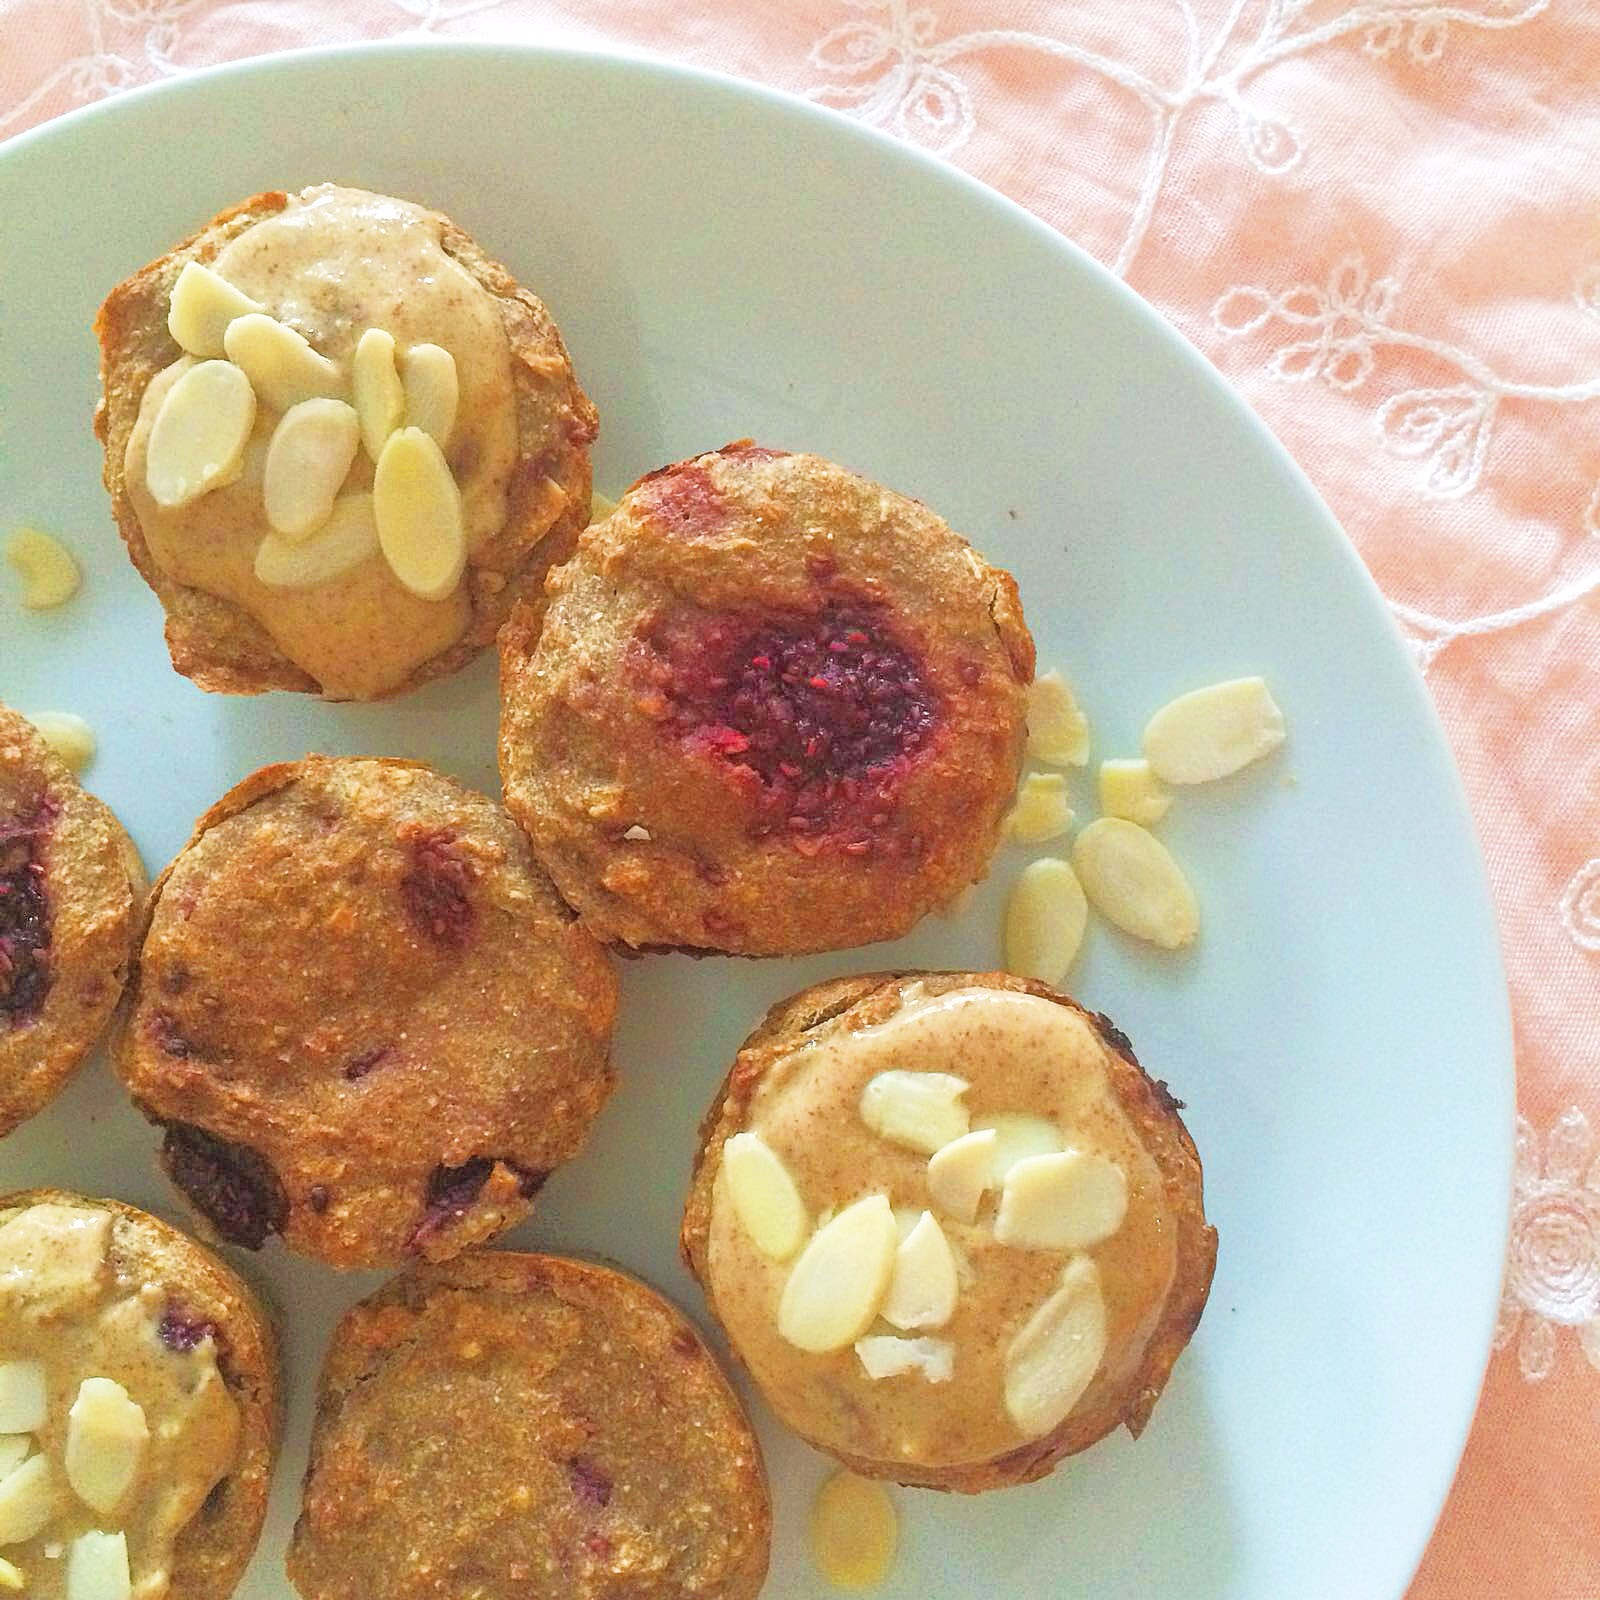 Raspberry and Almond Muffins